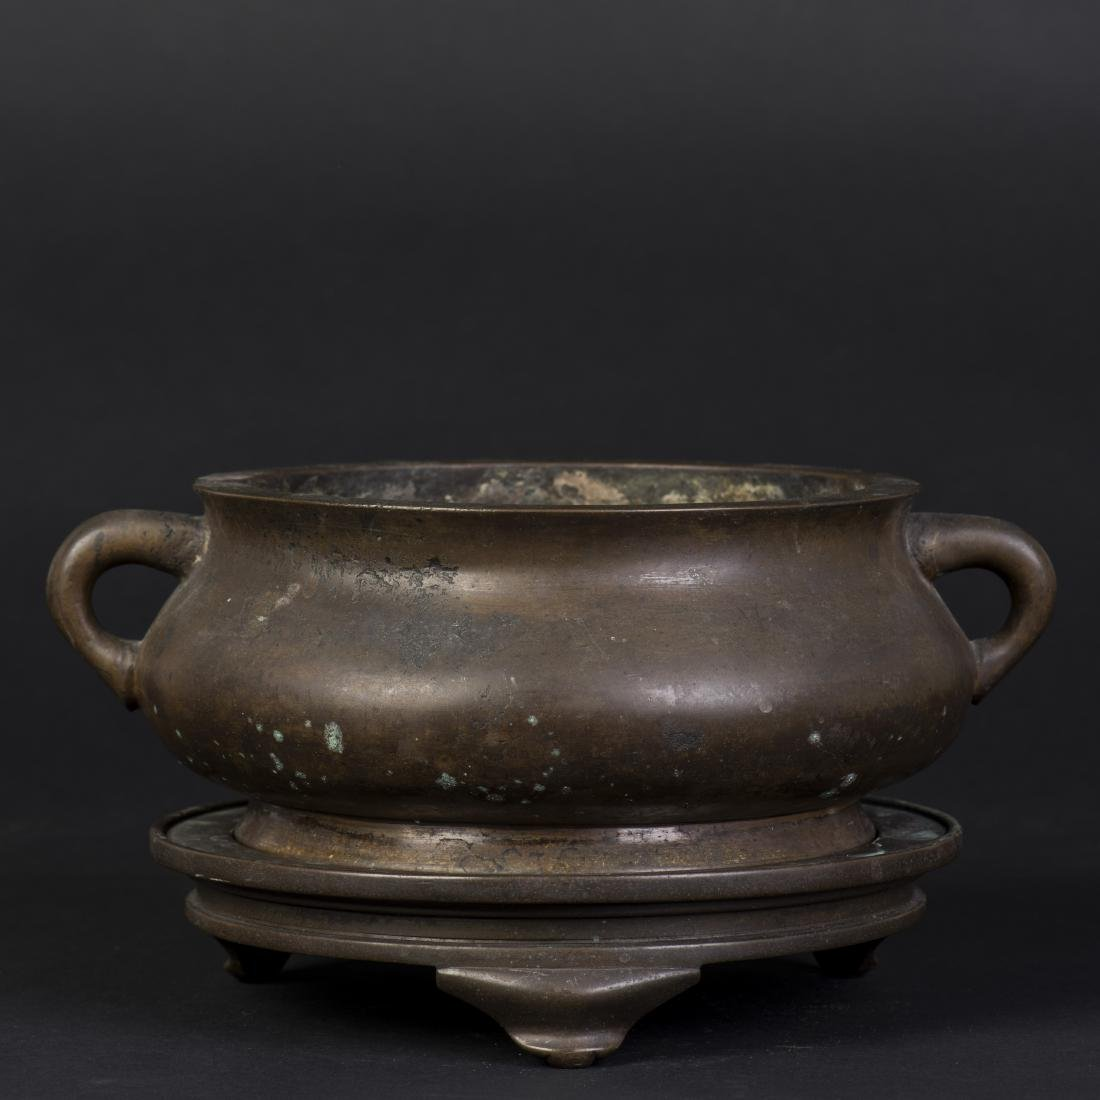 A BRONZE CENSER WITH XUAN DE MARK, QING DYNASTY, 18TH